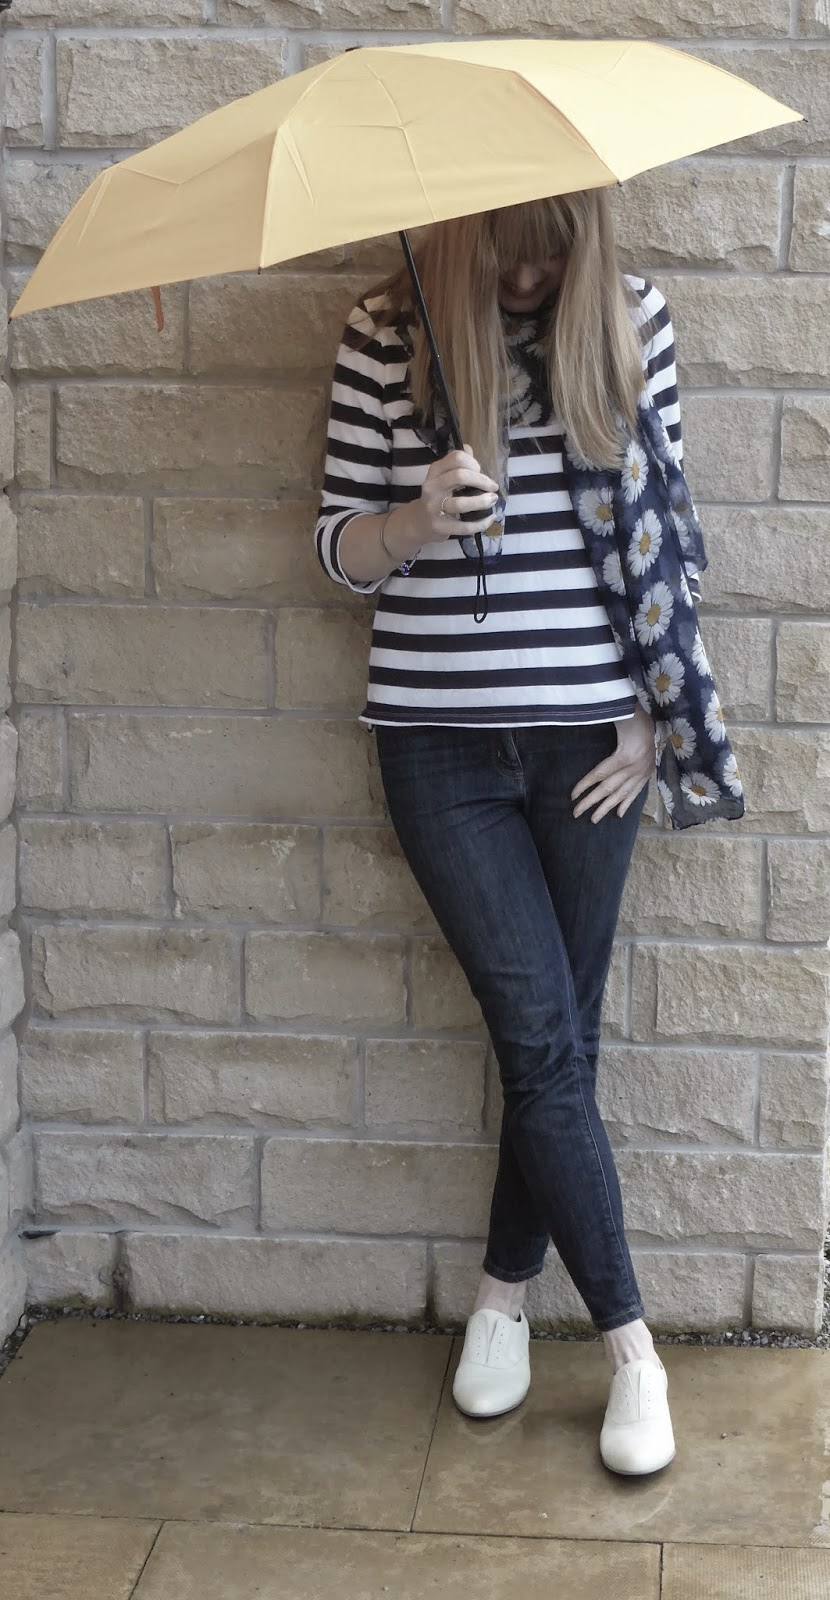 Over 40 styla blogger What Lizzy Loves wears Javk Wills Alburgh breton with floral daisy scarf and Clarks yellow brogues